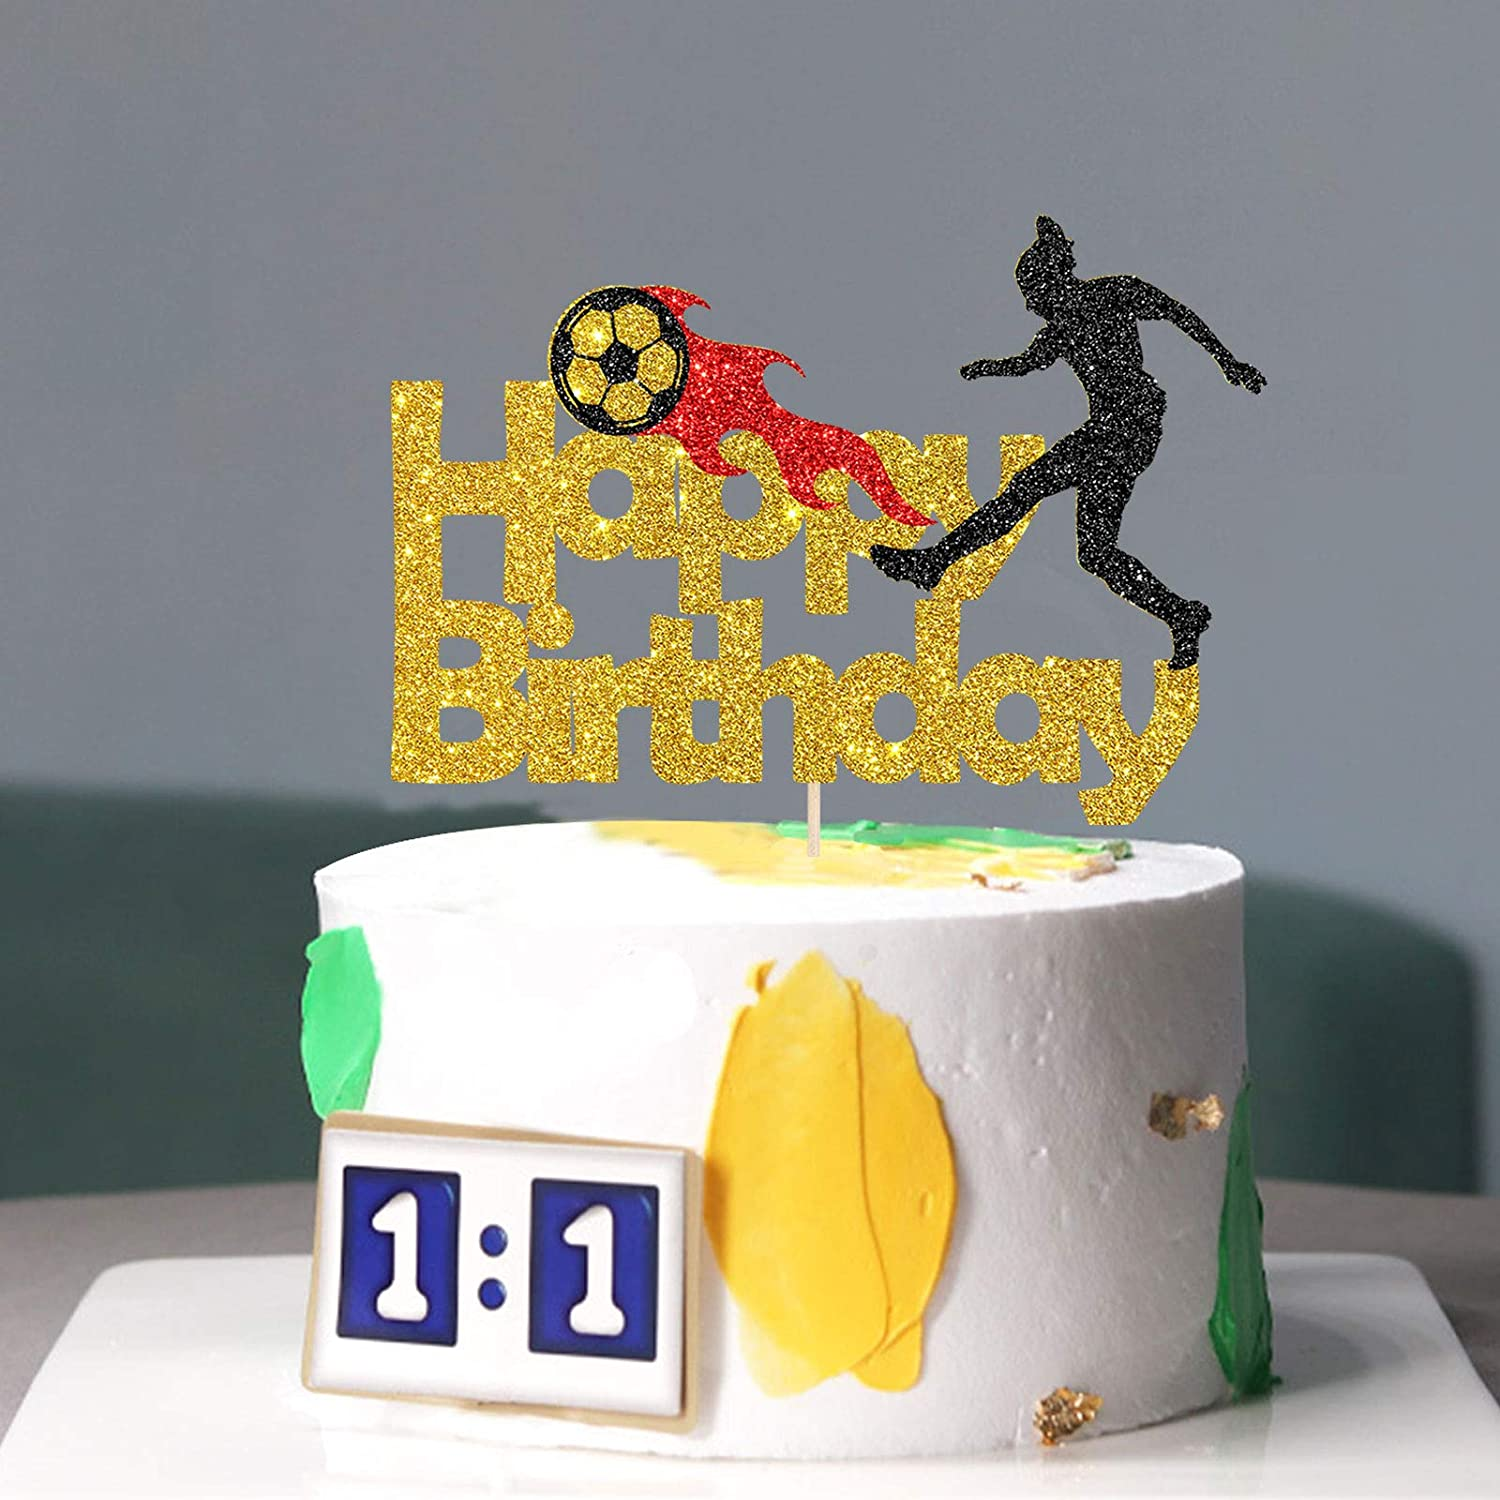 INNORU Gold Glitter Football Happy Birthday Cake Topper First Birthday Sport Theme Decor Boy and Girl Men Soccer Club Birthday Party Cake Decorations Supplies Birthday Party Photo booth Props